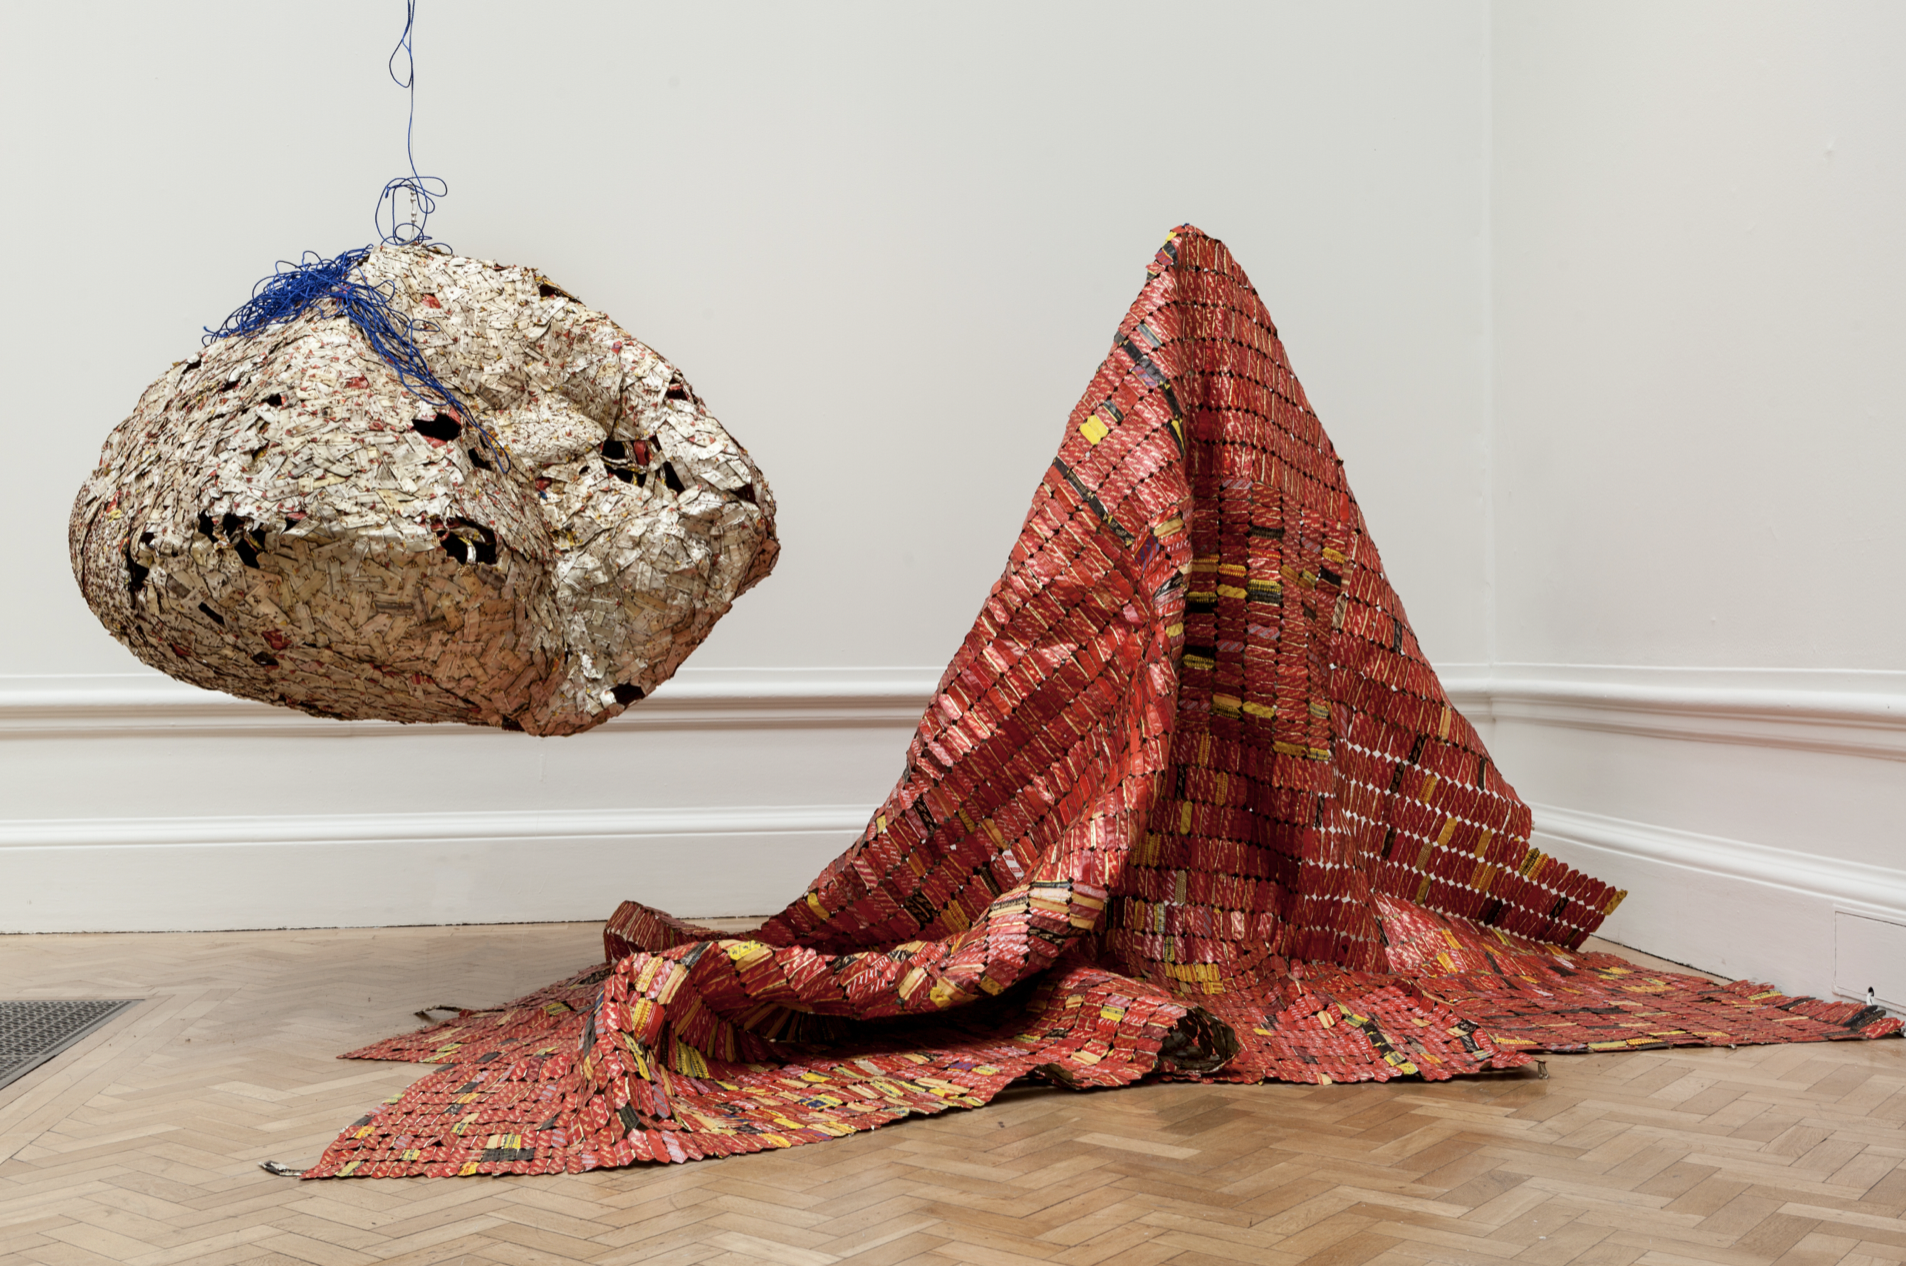 El Anatsui, 'AG + BA', 2014, Aluminium, copper wire and nylon rope, dimensions variable. Courtesy the artist and October Gallery, London. Photo: Jonathan Greet.